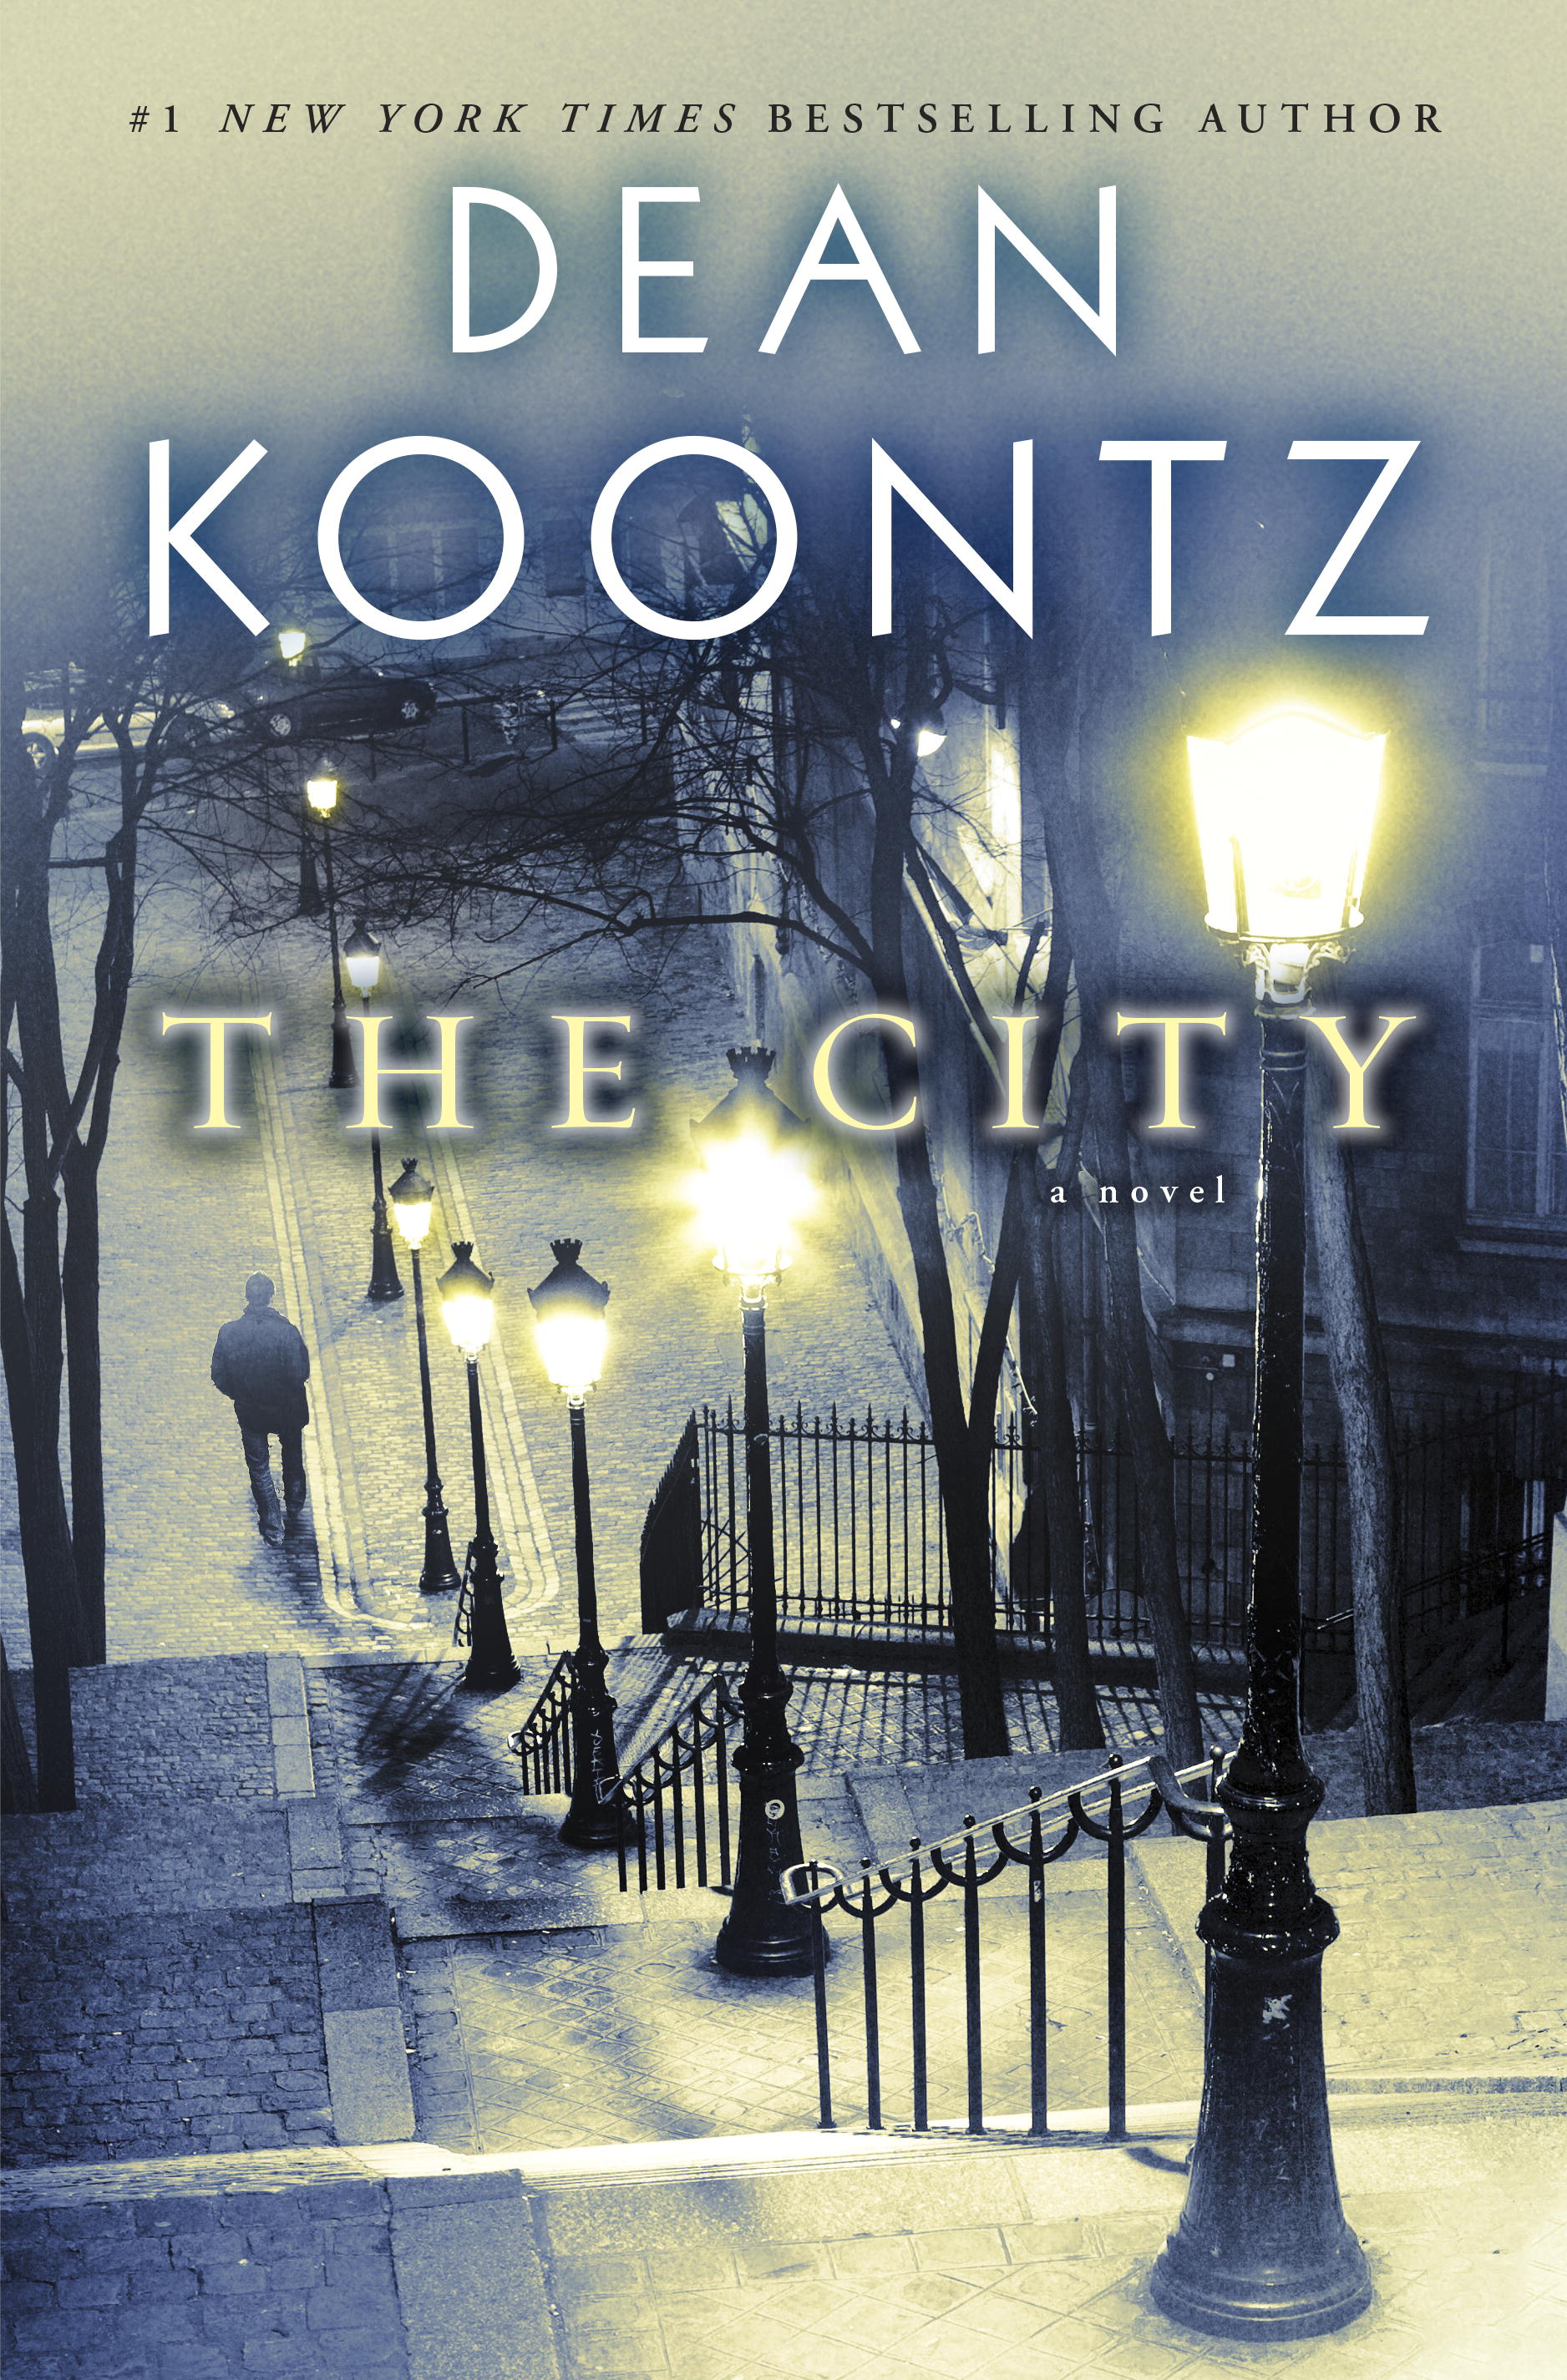 THE CITY is now available in hardcover, ebook, and audio!